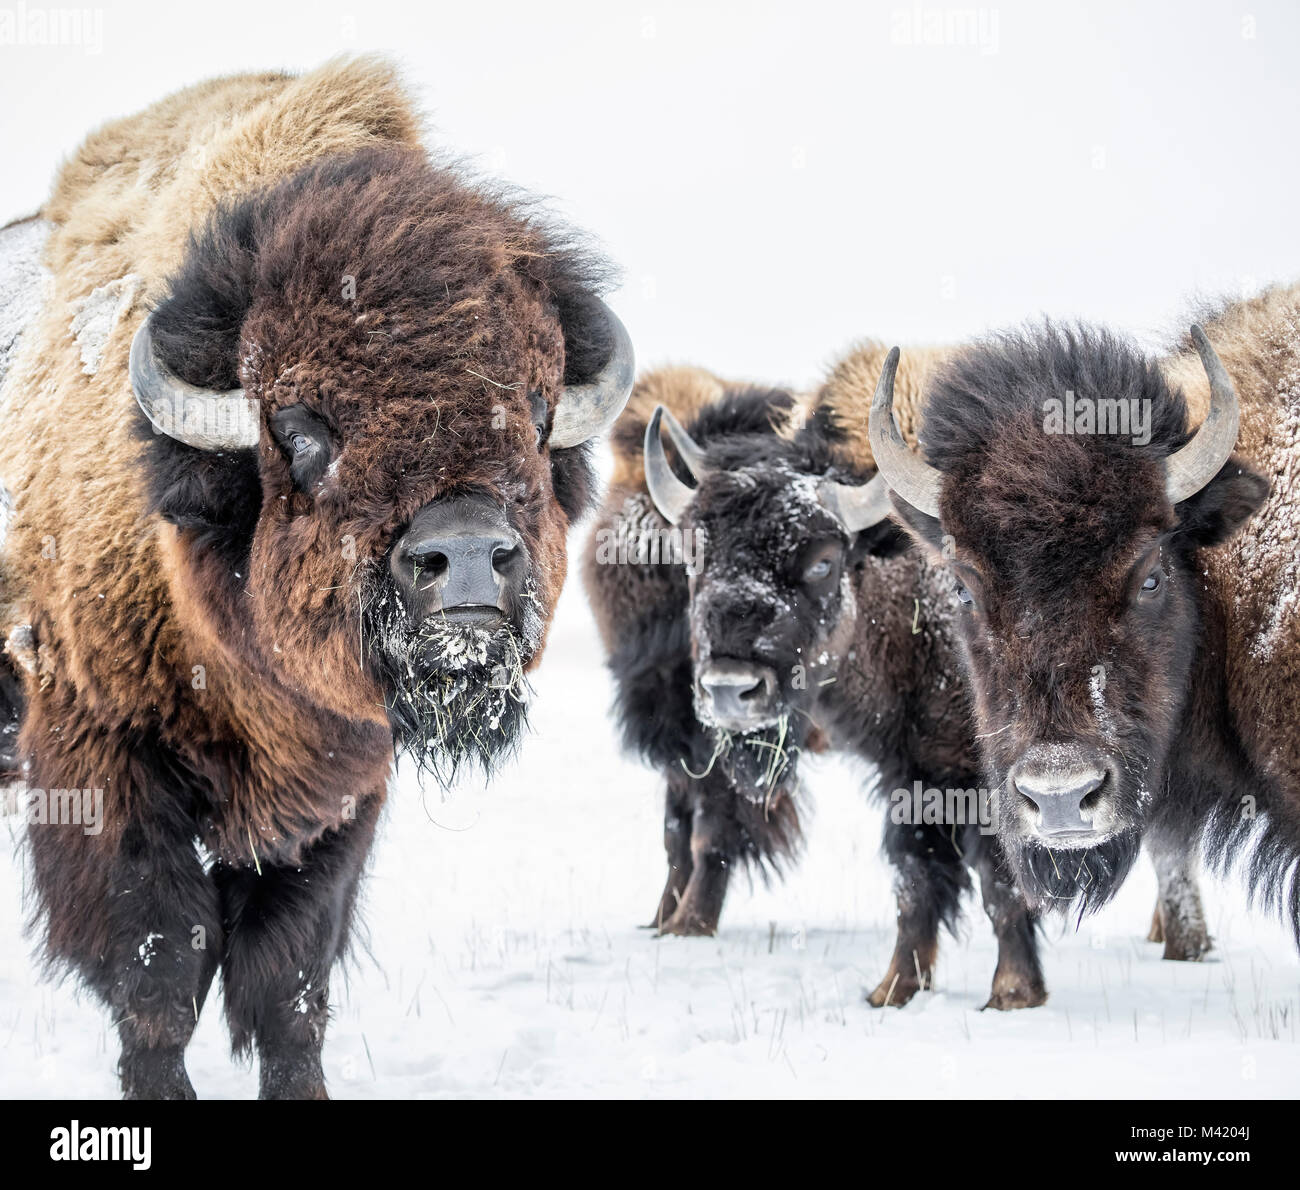 Plains Bison, (Bison bison bison) or American Buffalo, in winter, Manitoba, Canada. - Stock Image